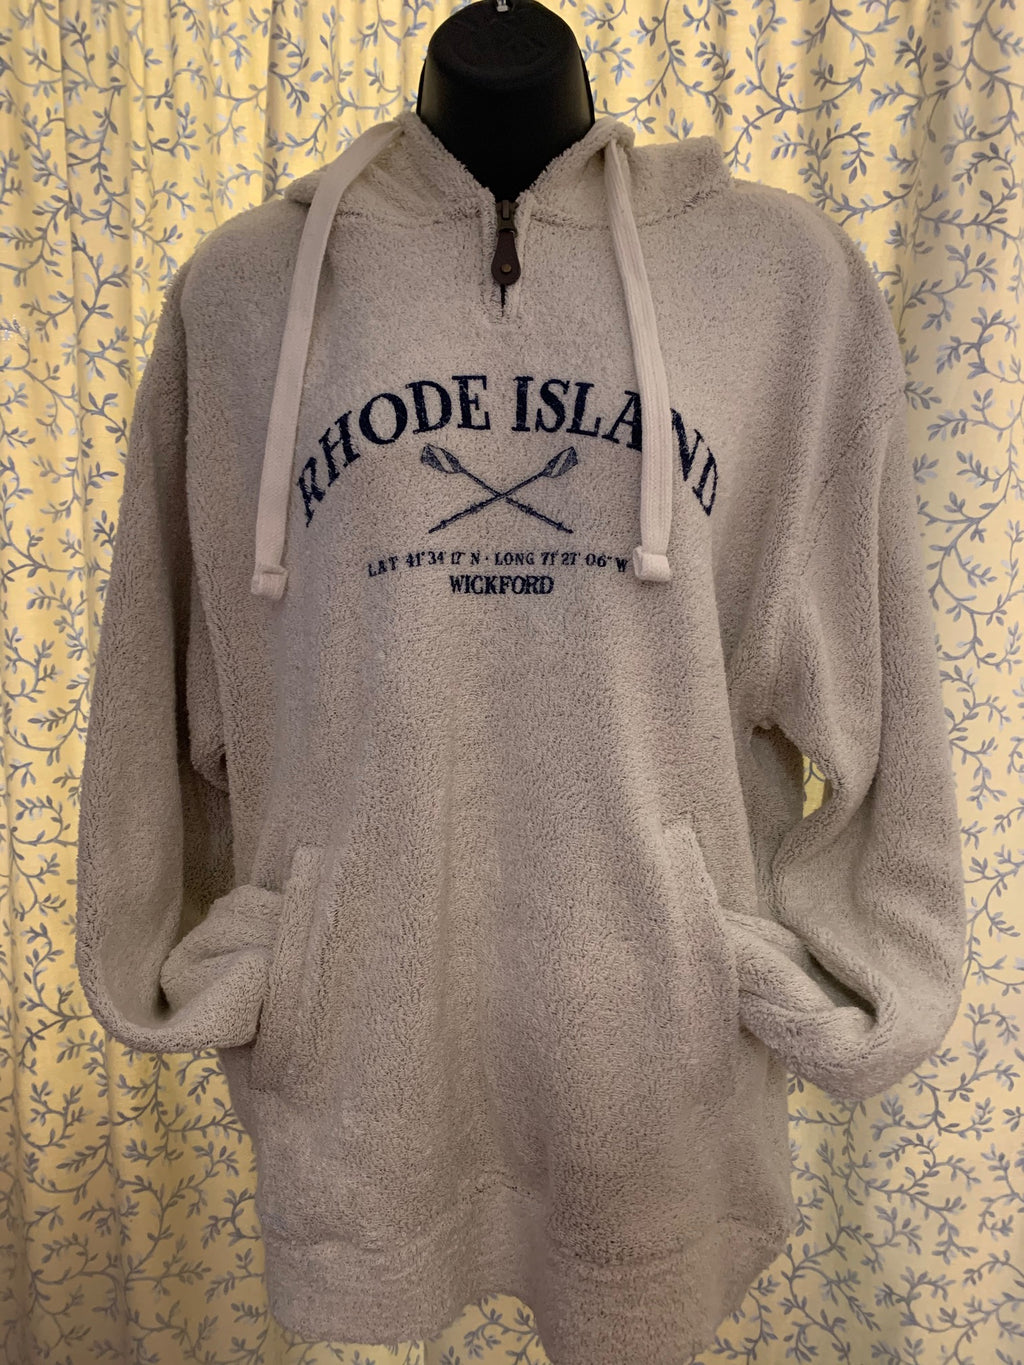 "This sweatshirt is the Original Big Loop Terry Sweatshirt!  The image in navy ink reads Rhode Island, with crossed oars, Latitude is 41 degree, 34' 17"" N and Longitude is 71 degree, 27' 06"" W the last line reads Wickford.  It has a reverse construction with the terry face on the outside. The hood is lined with jersey fabric and the drawcord is color matched. The heavy duty zipper has a fashion pull for an ease of zipping."